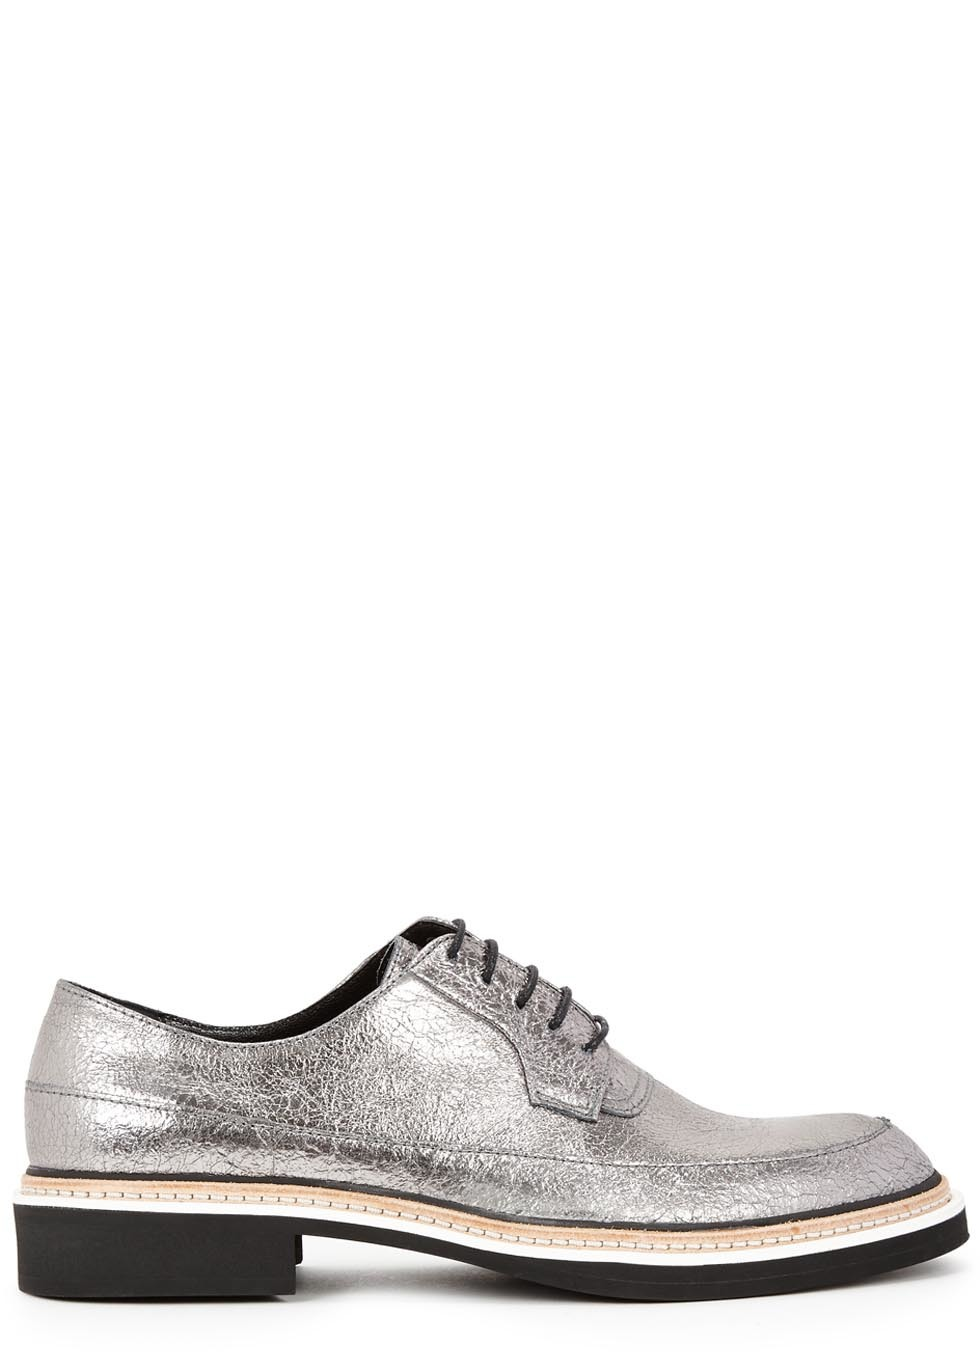 Columbia Silver Leather Derby Shoes - predominant colour: silver; occasions: casual, creative work; material: leather; heel height: flat; toe: round toe; finish: metallic; pattern: plain; style: lace ups; season: s/s 2016; wardrobe: basic